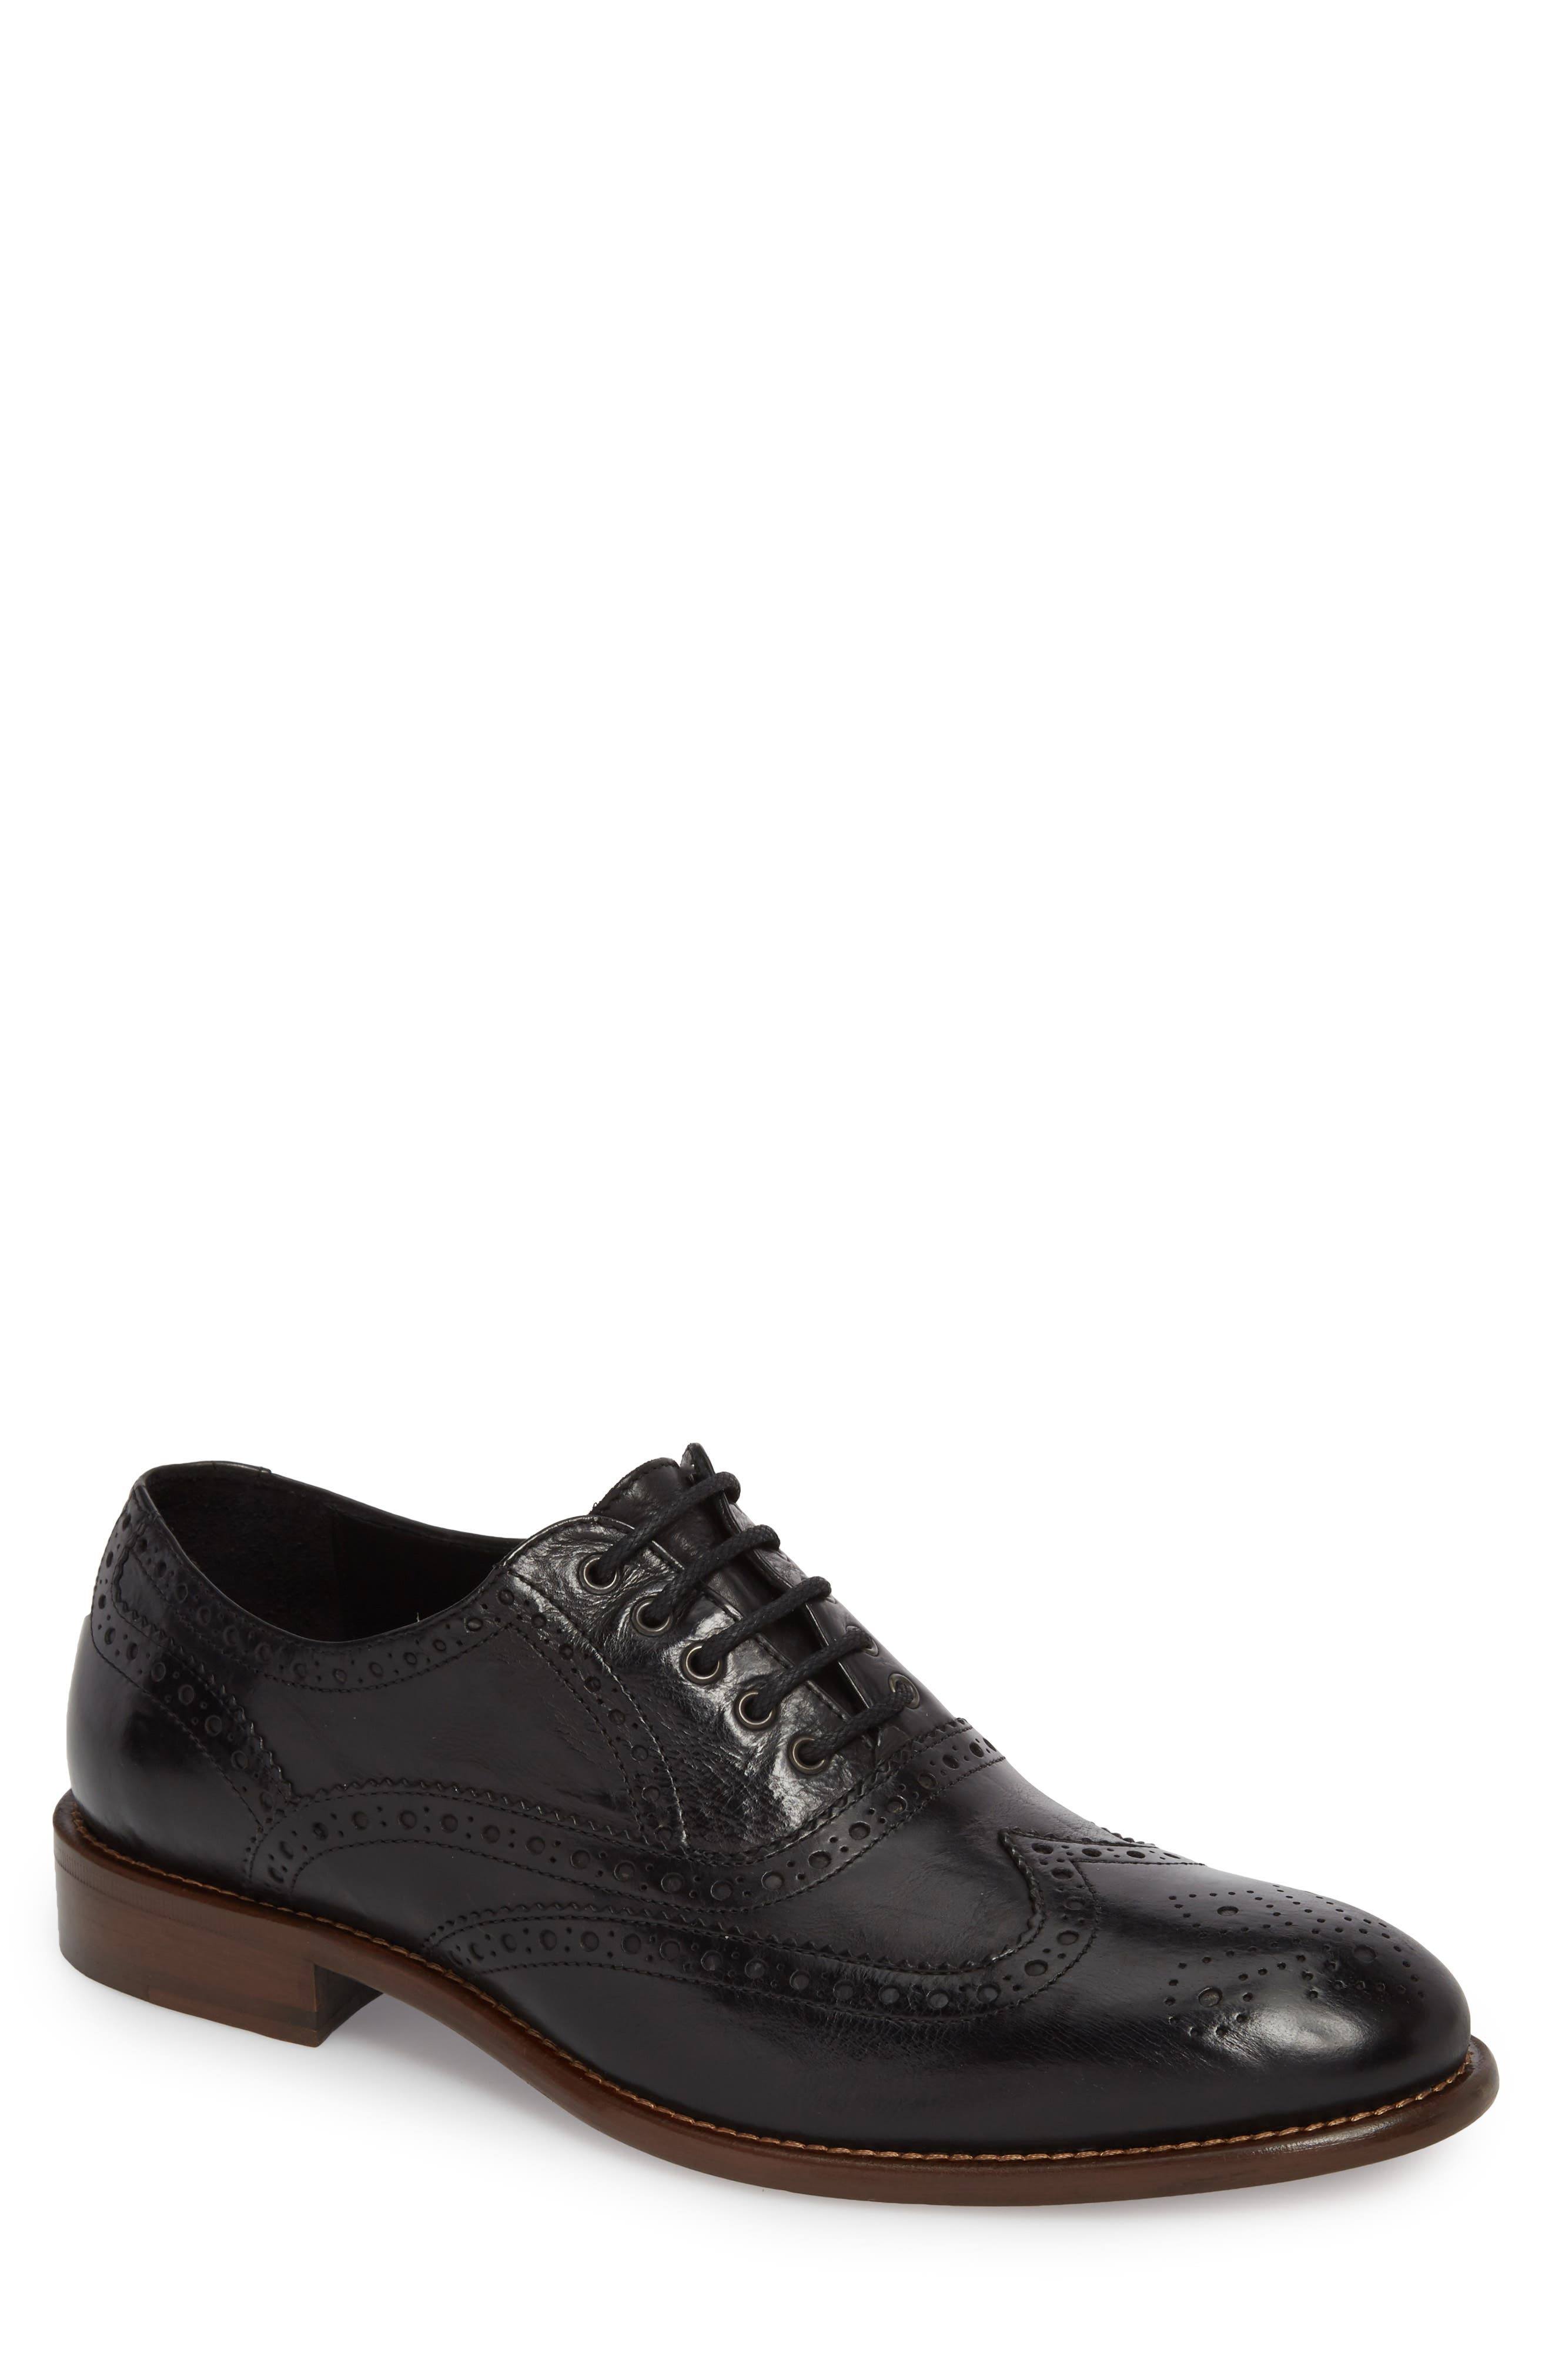 Bryson Wingtip Oxford,                         Main,                         color, BLACK LEATHER